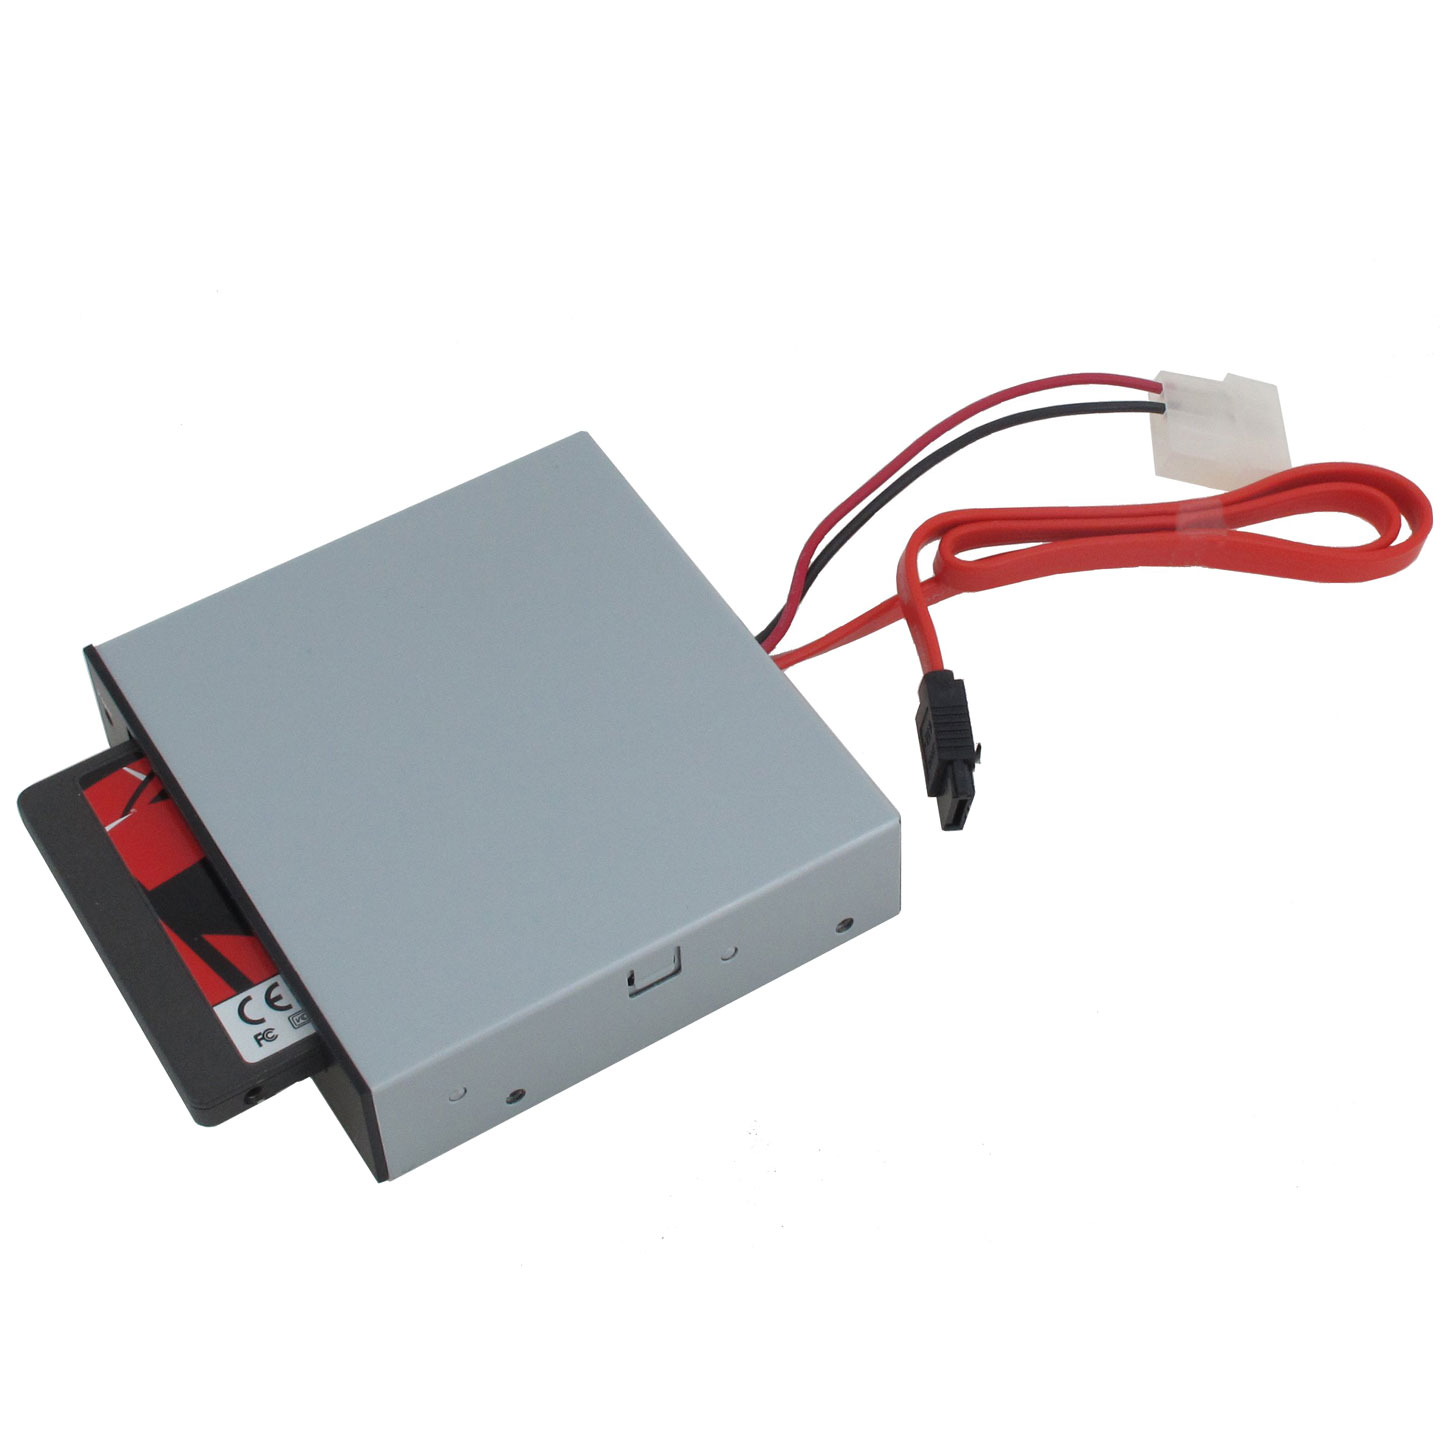 SATA 6Gb/s Internal 2.5-inch SSD/HDD/SSHD Dock for Floppy Bays